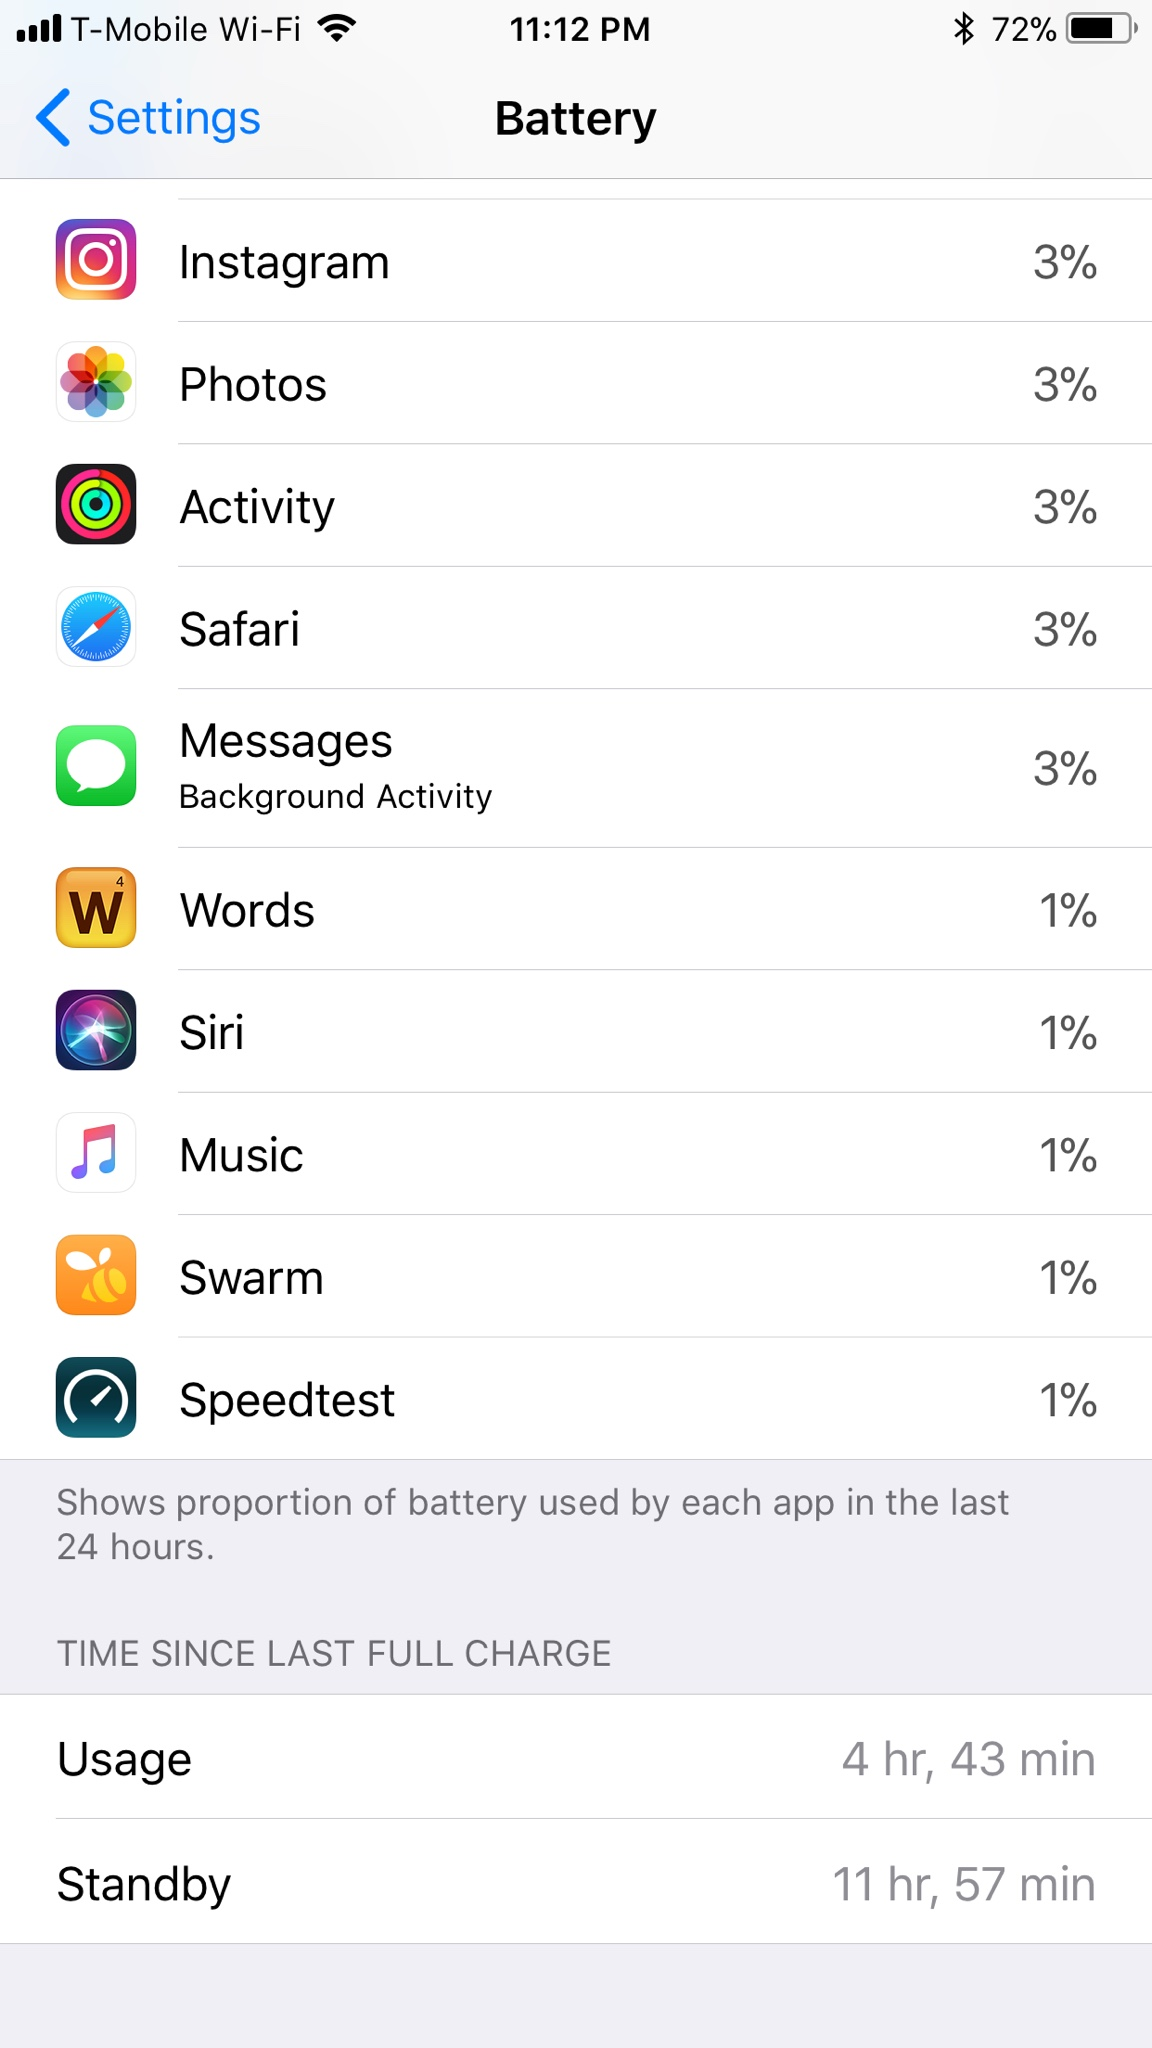 Post Your Battery Life Results